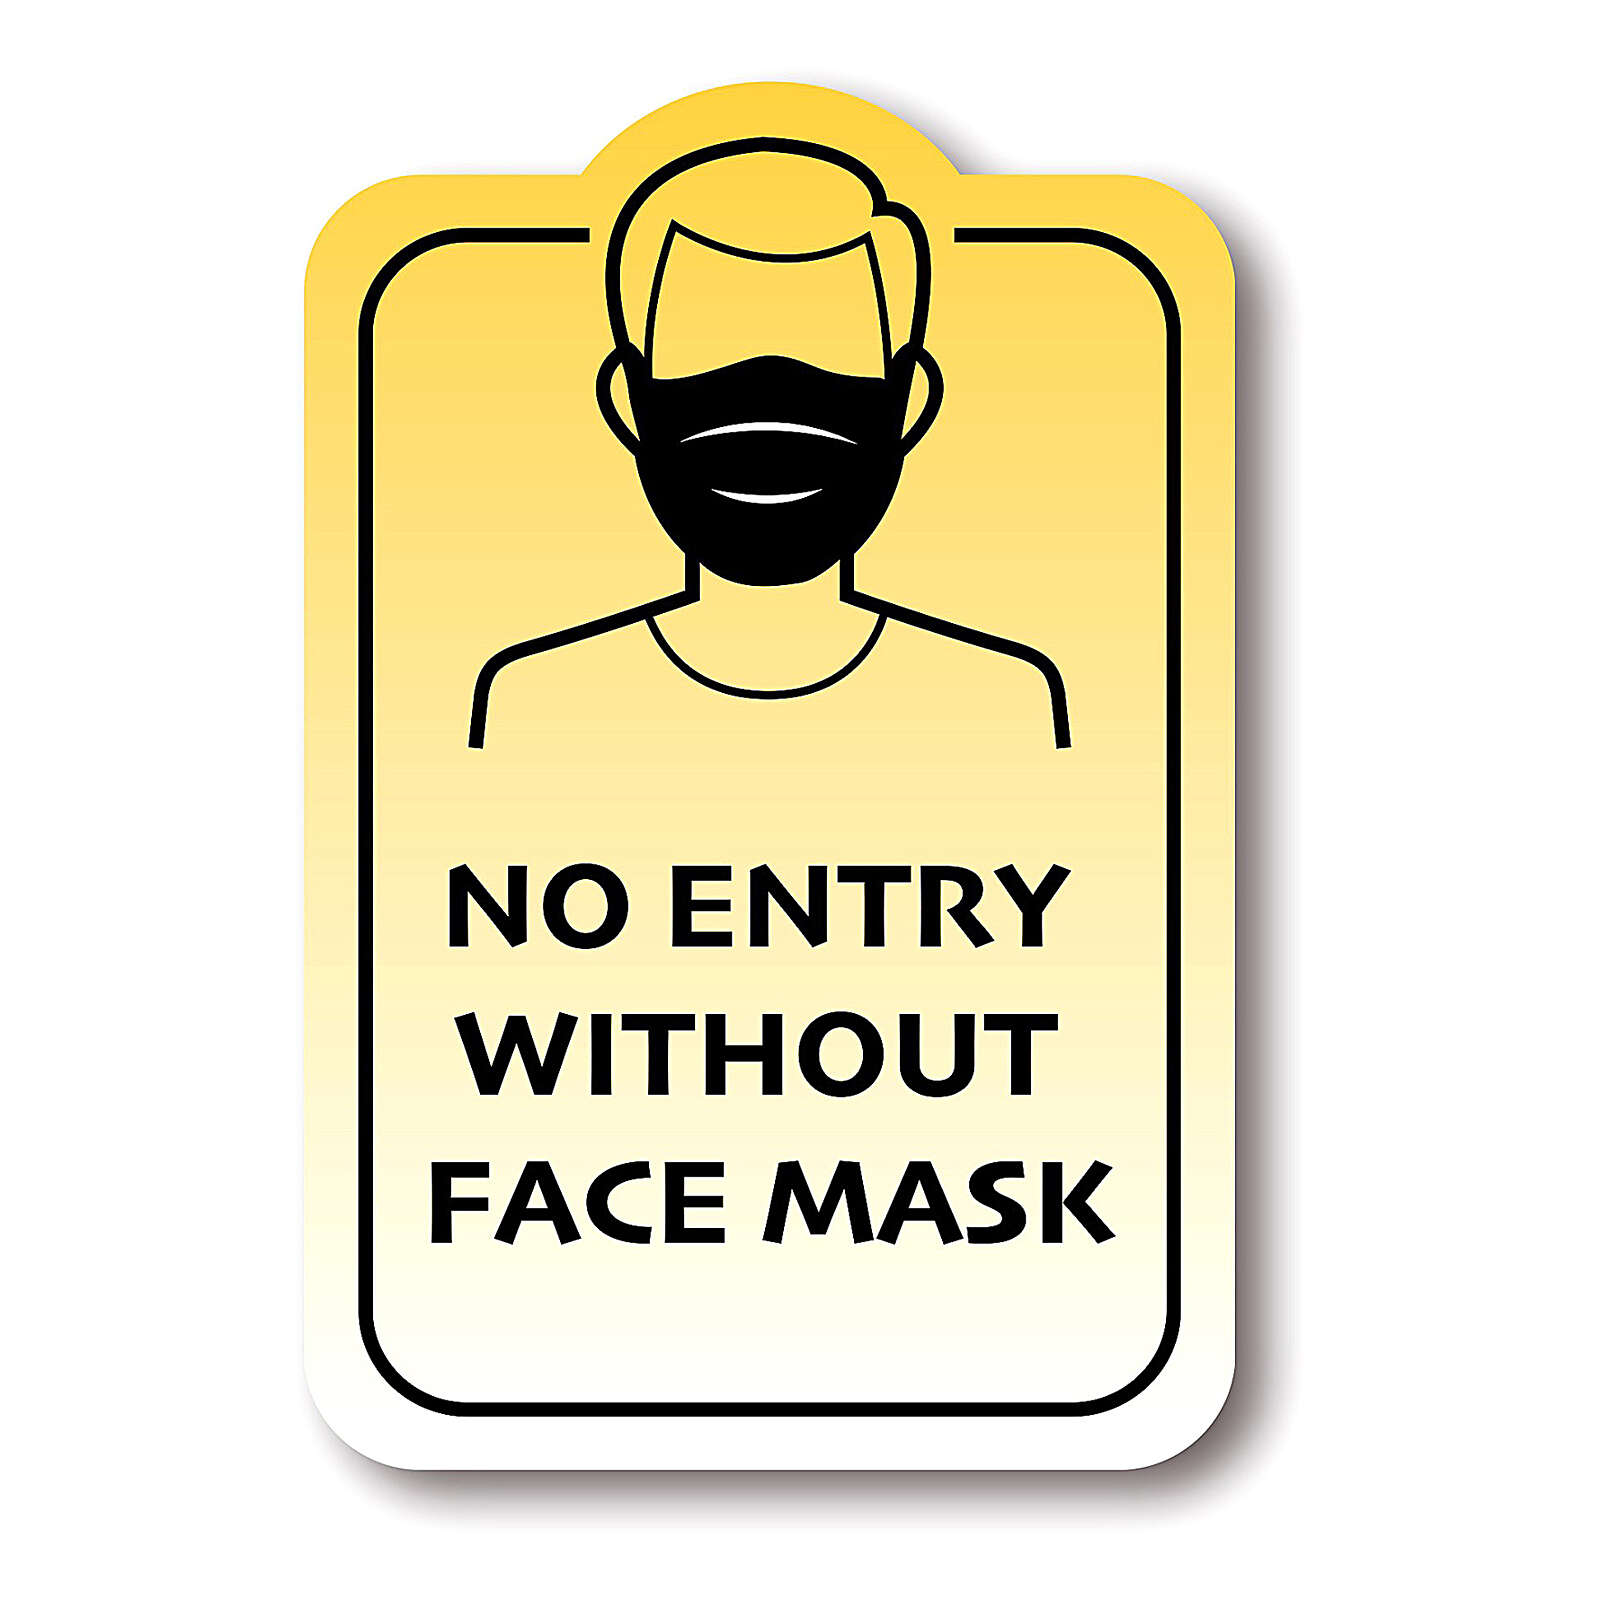 NO ENTRY WITHOUT FACE MASK removable stickers 4 pcs 3